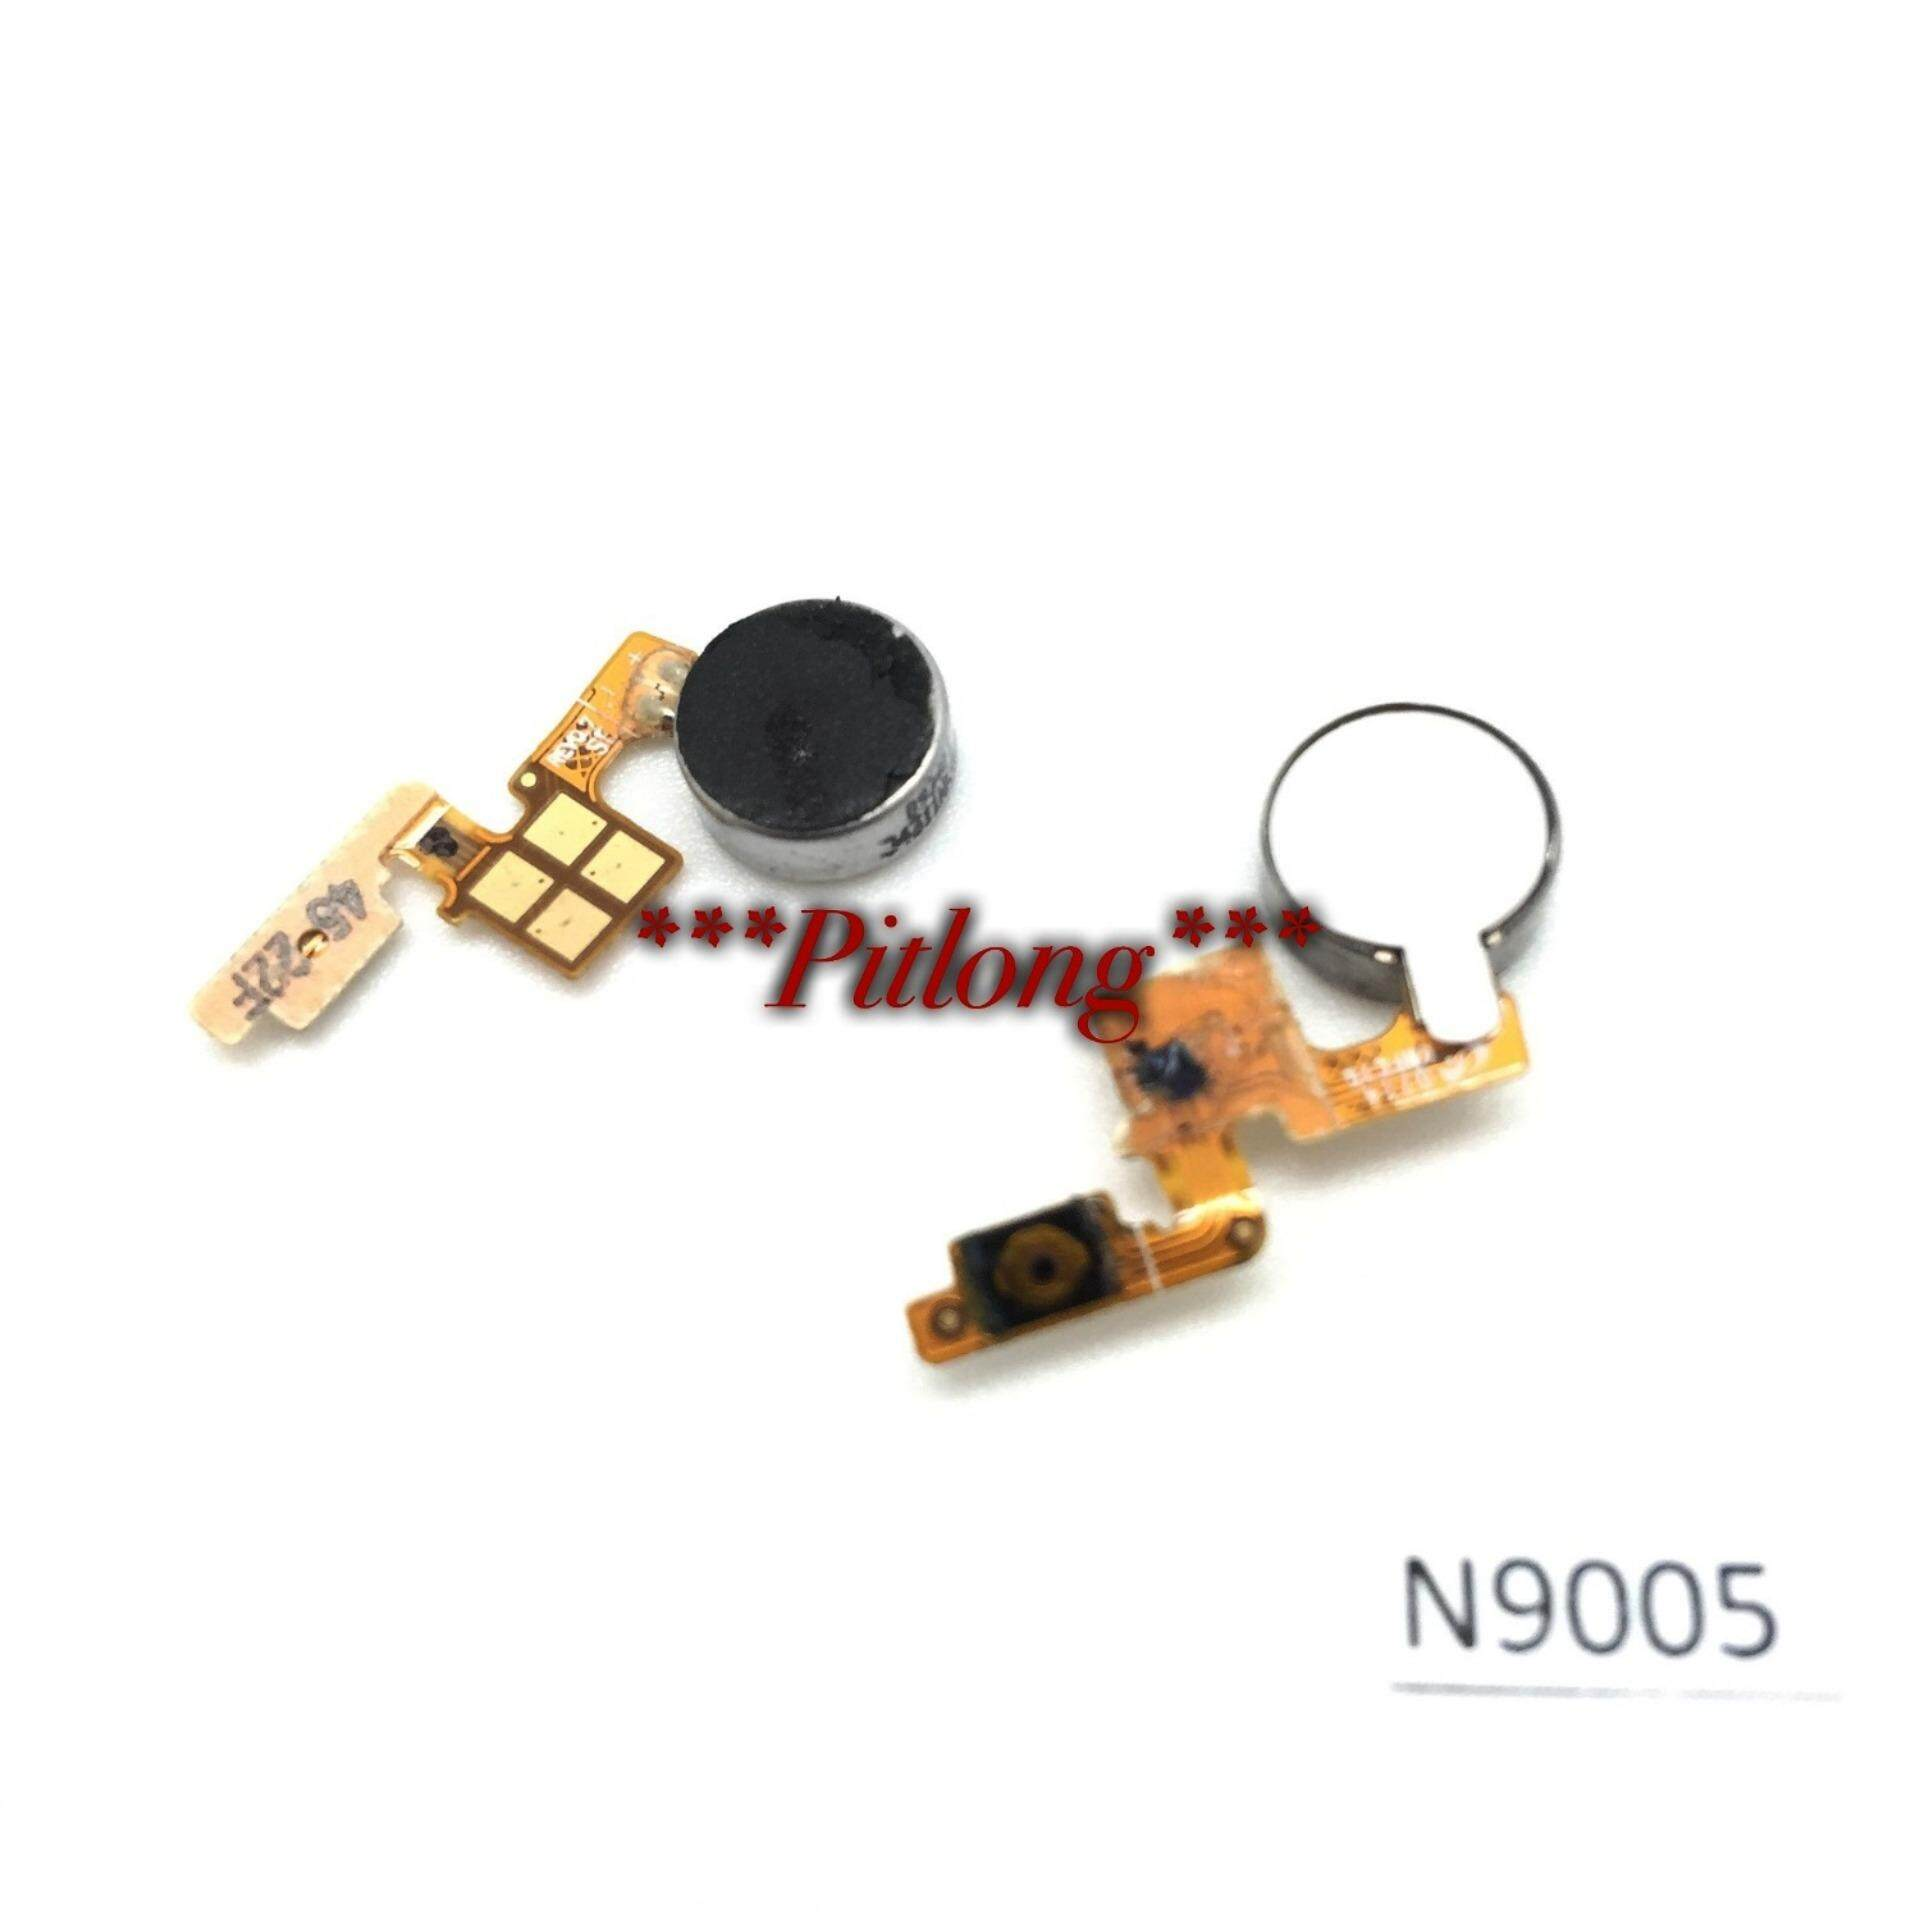 Samsung Mobile Accessories Price In Malaysia Best Kabel Data Charger Galaxy S4 S3 Note Mega Grand Original 100 3 N9001 N9005 Power Butoon On Off Flex Cable Free Tools